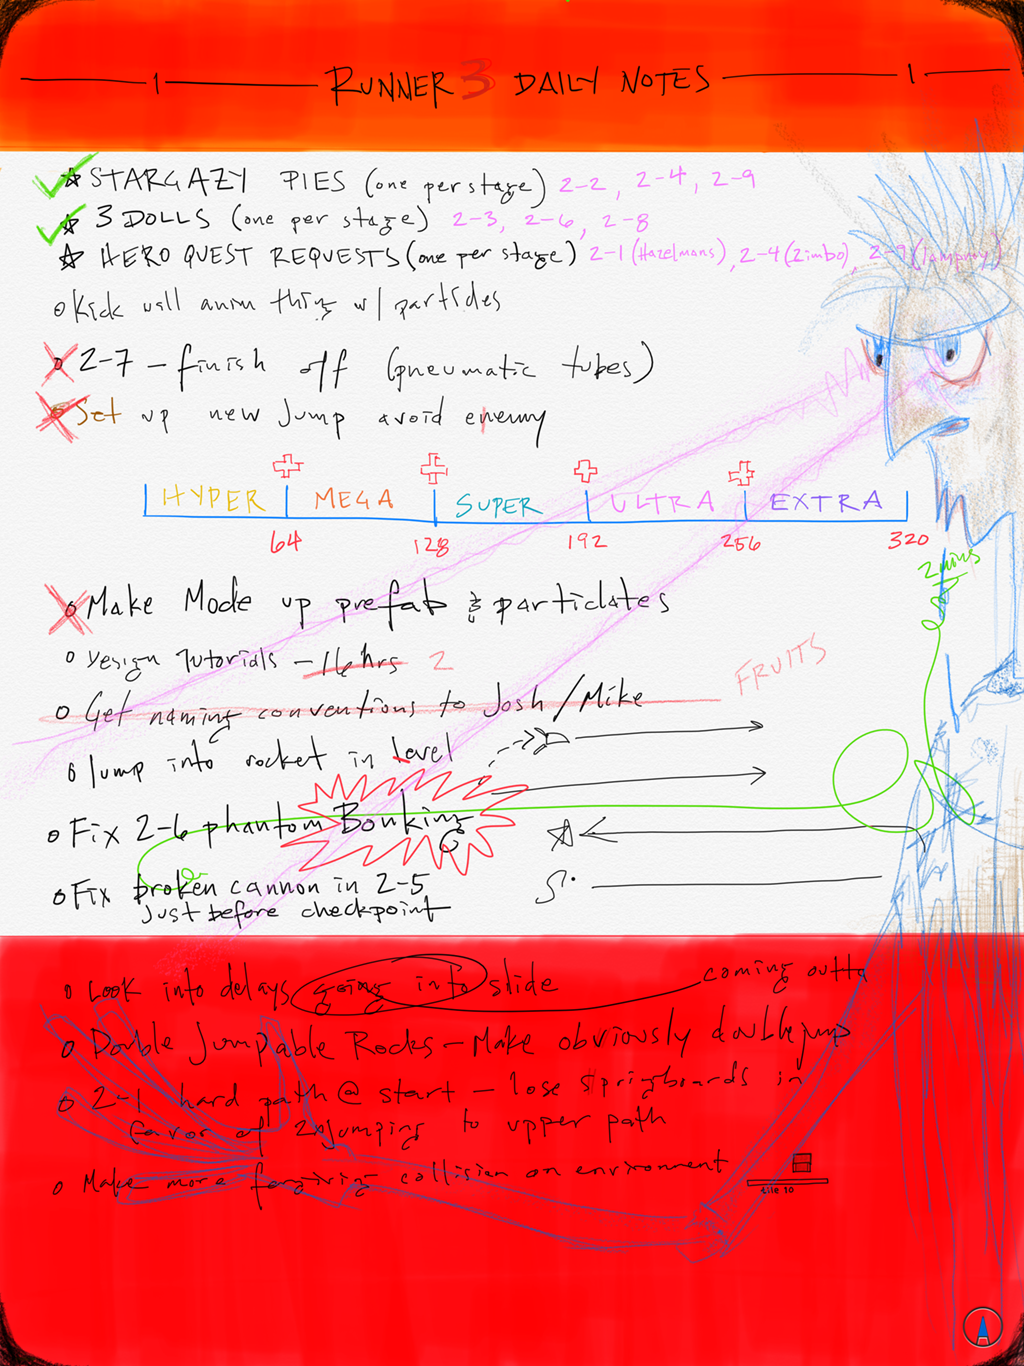 Runner3 - Daily Notes - 20161201.PNG